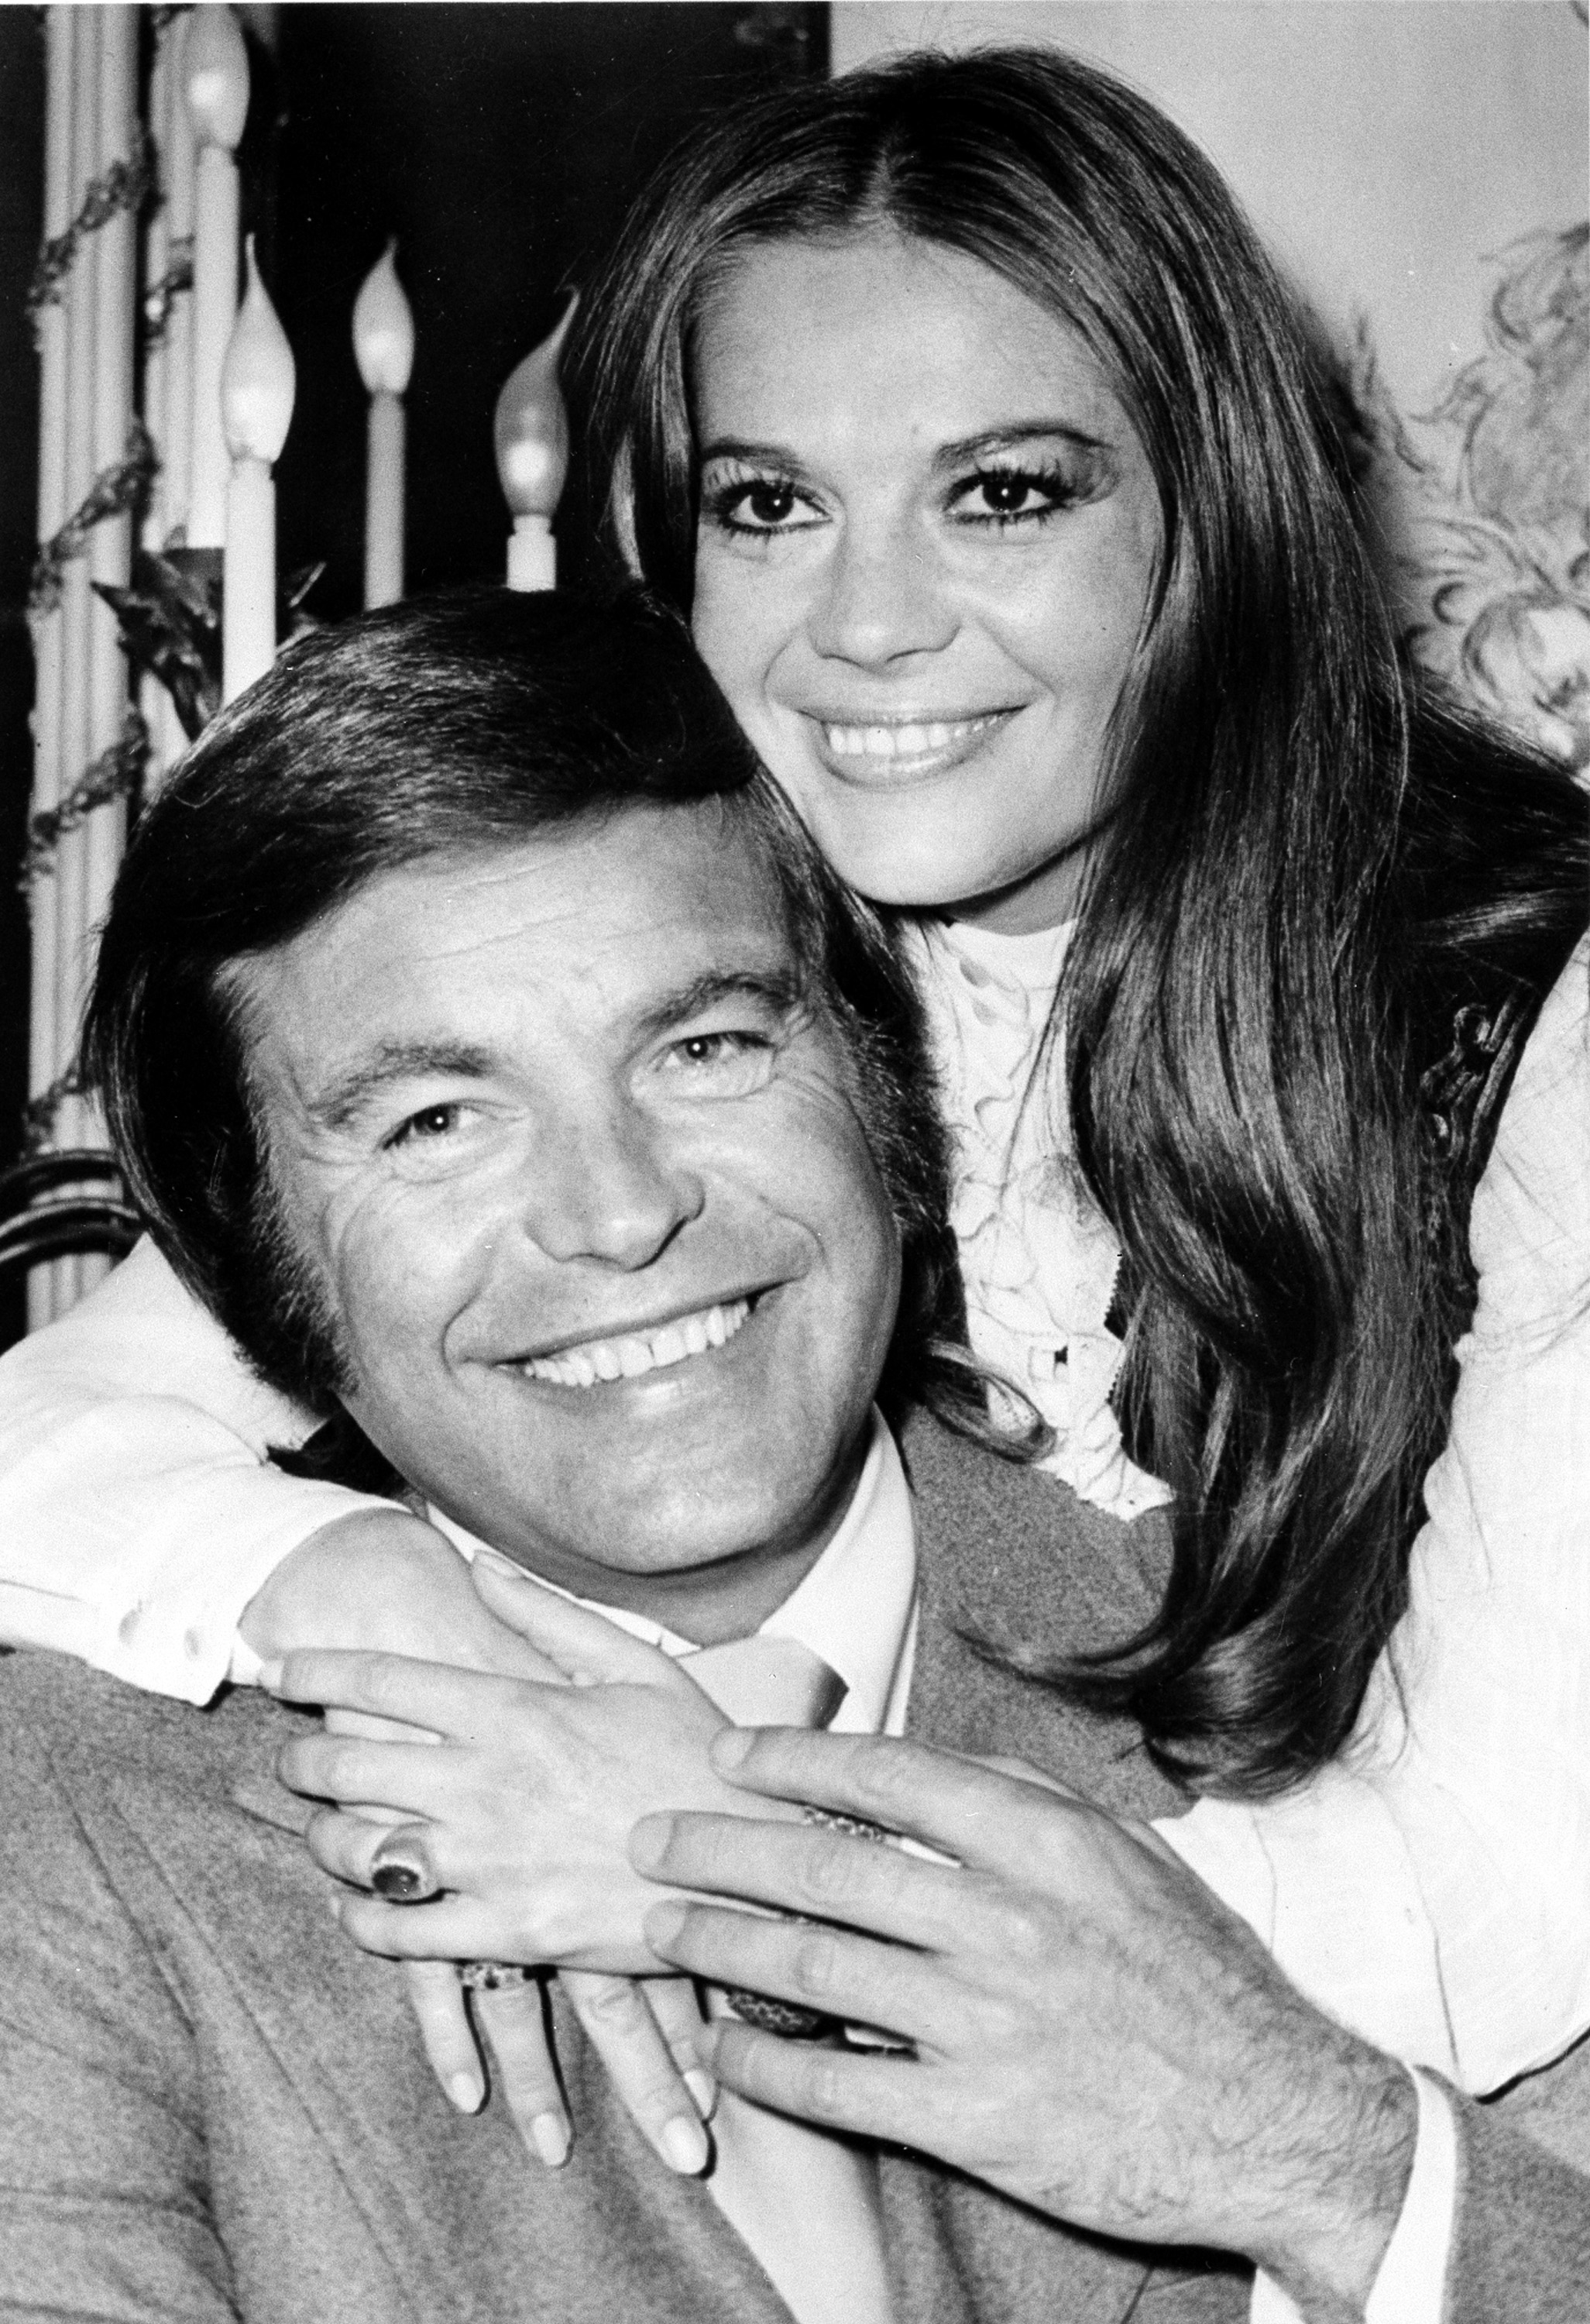 FILE - In this April 23, 1972 file photo, actor Robert Wagner and his former wife, actress Natalie Wood, pose at the Dorchester Hotel in London, England. {&amp;nbsp;}(AP File Photo)<p></p>